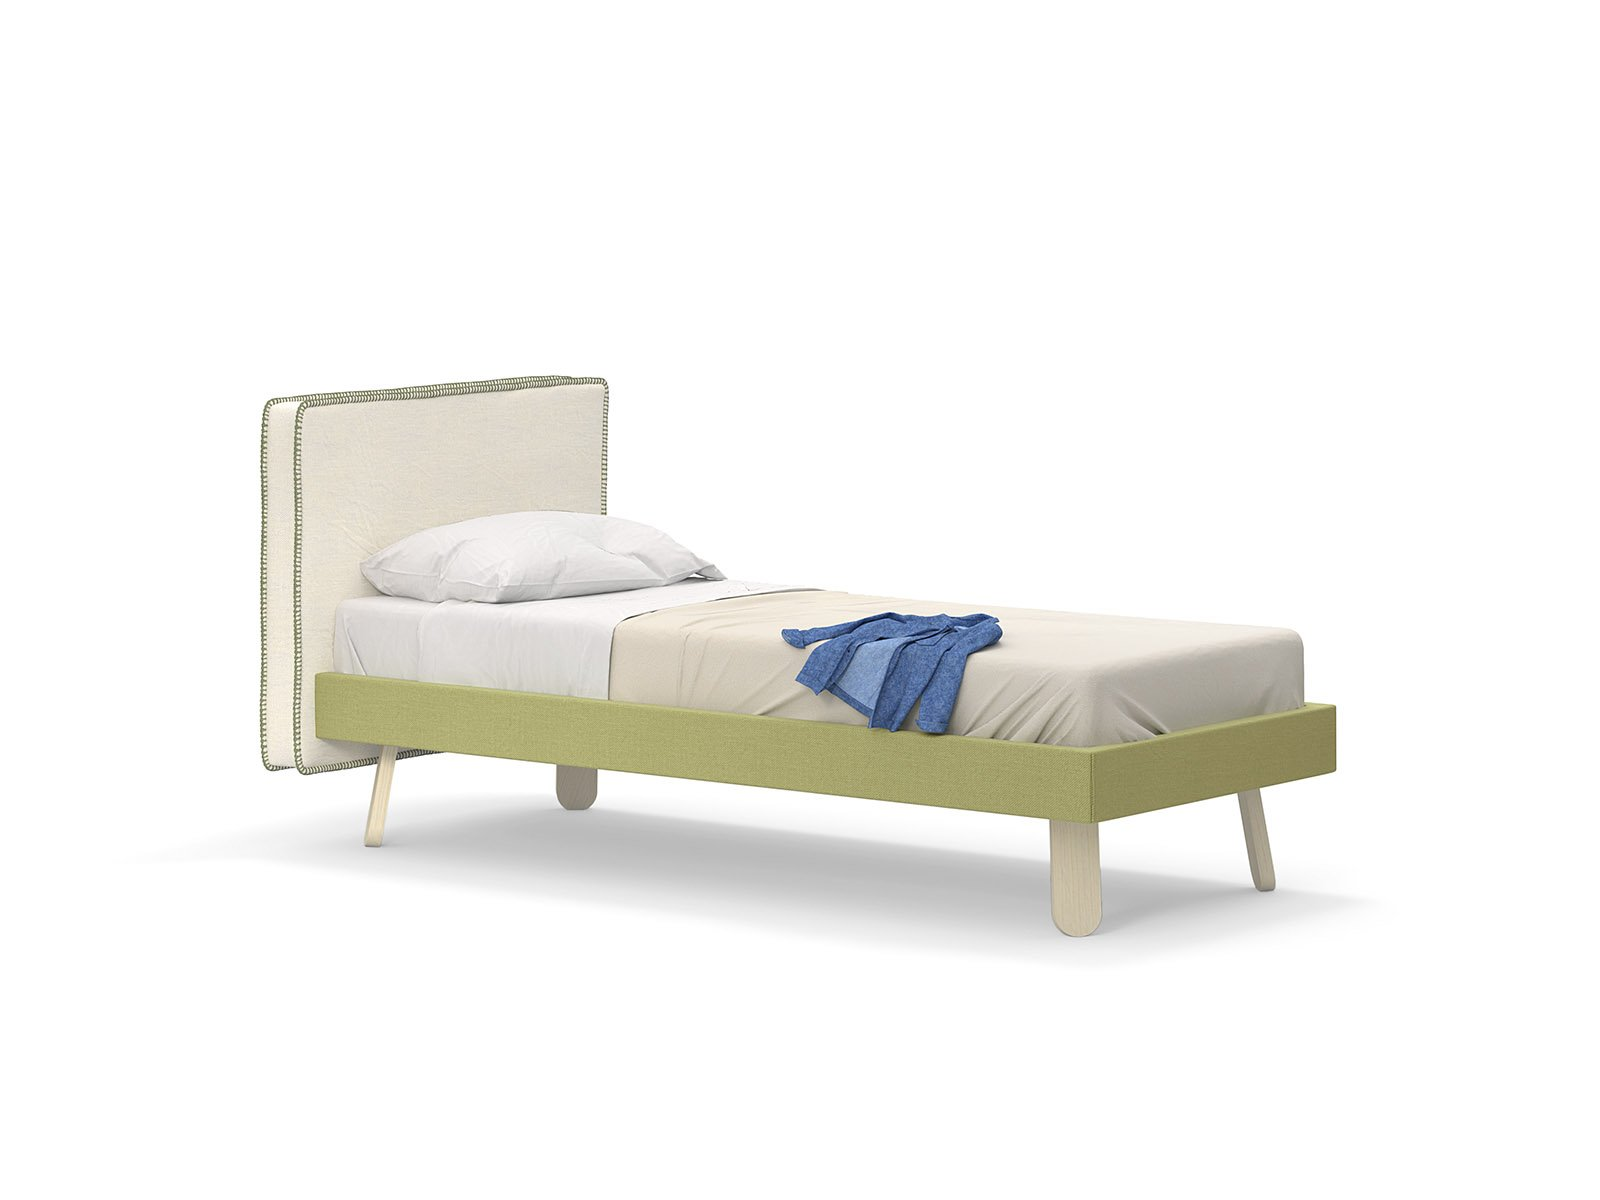 Hug single bed